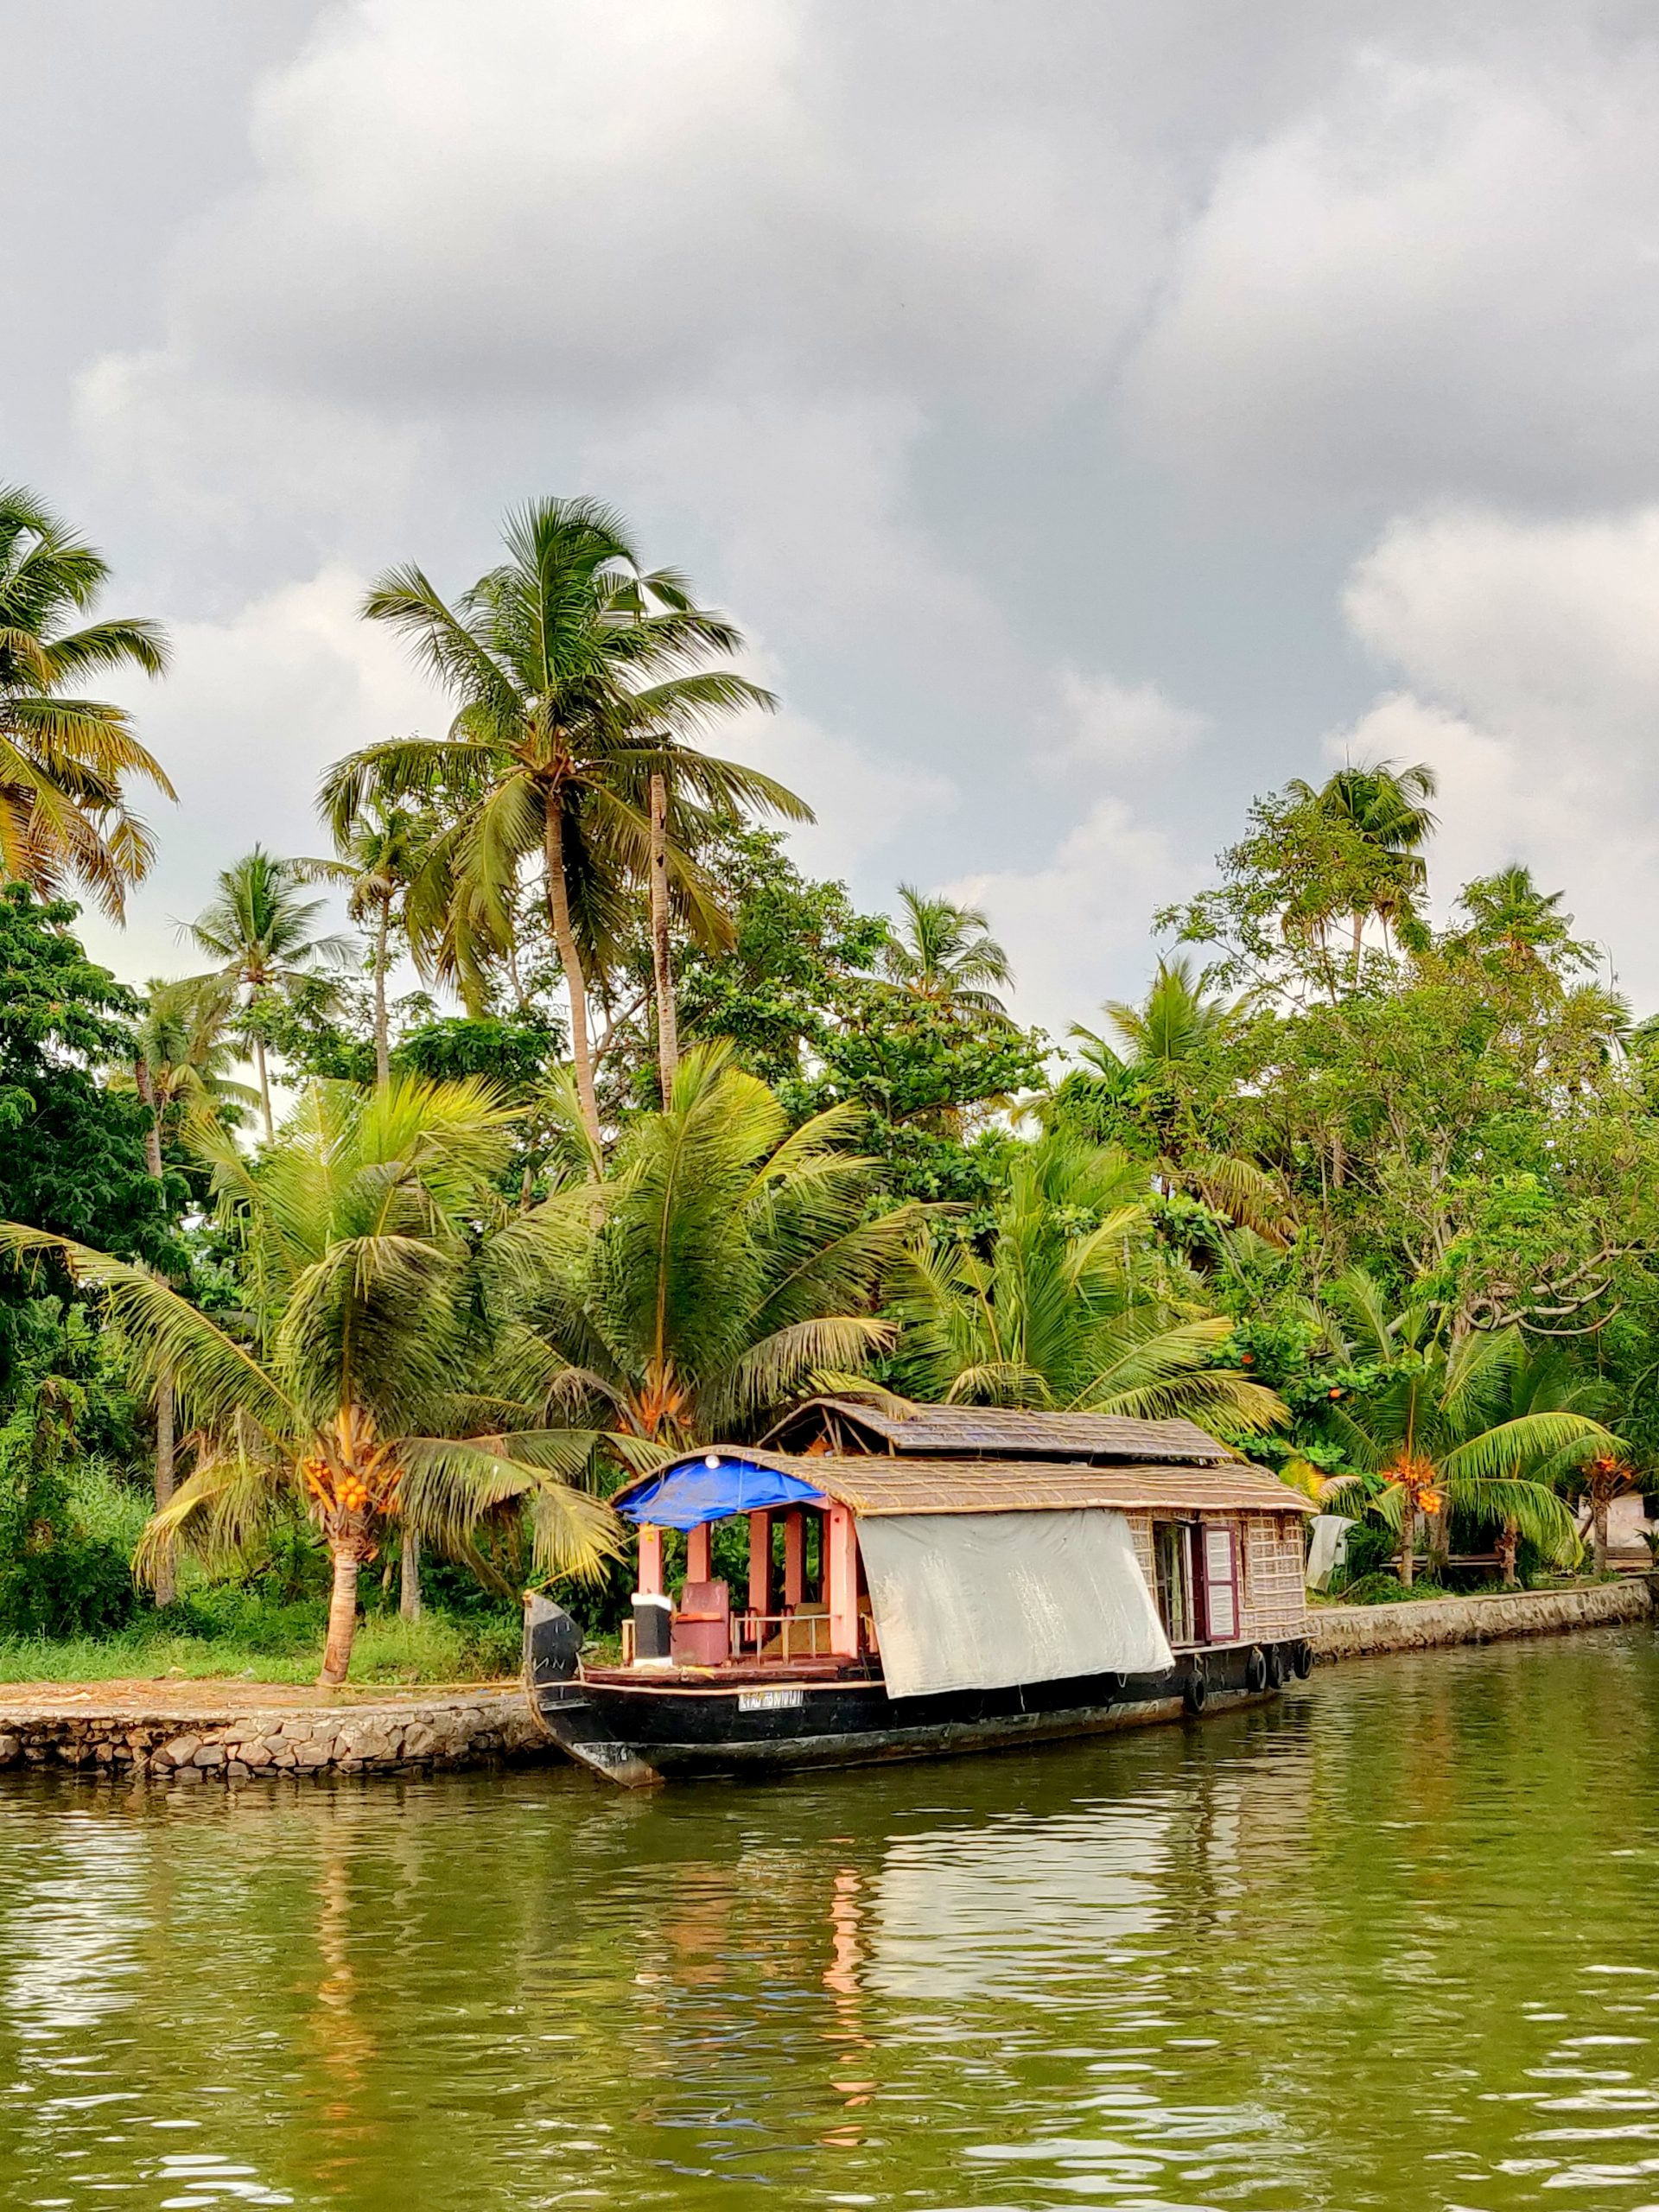 Cruising in the backwaters of Alleppey